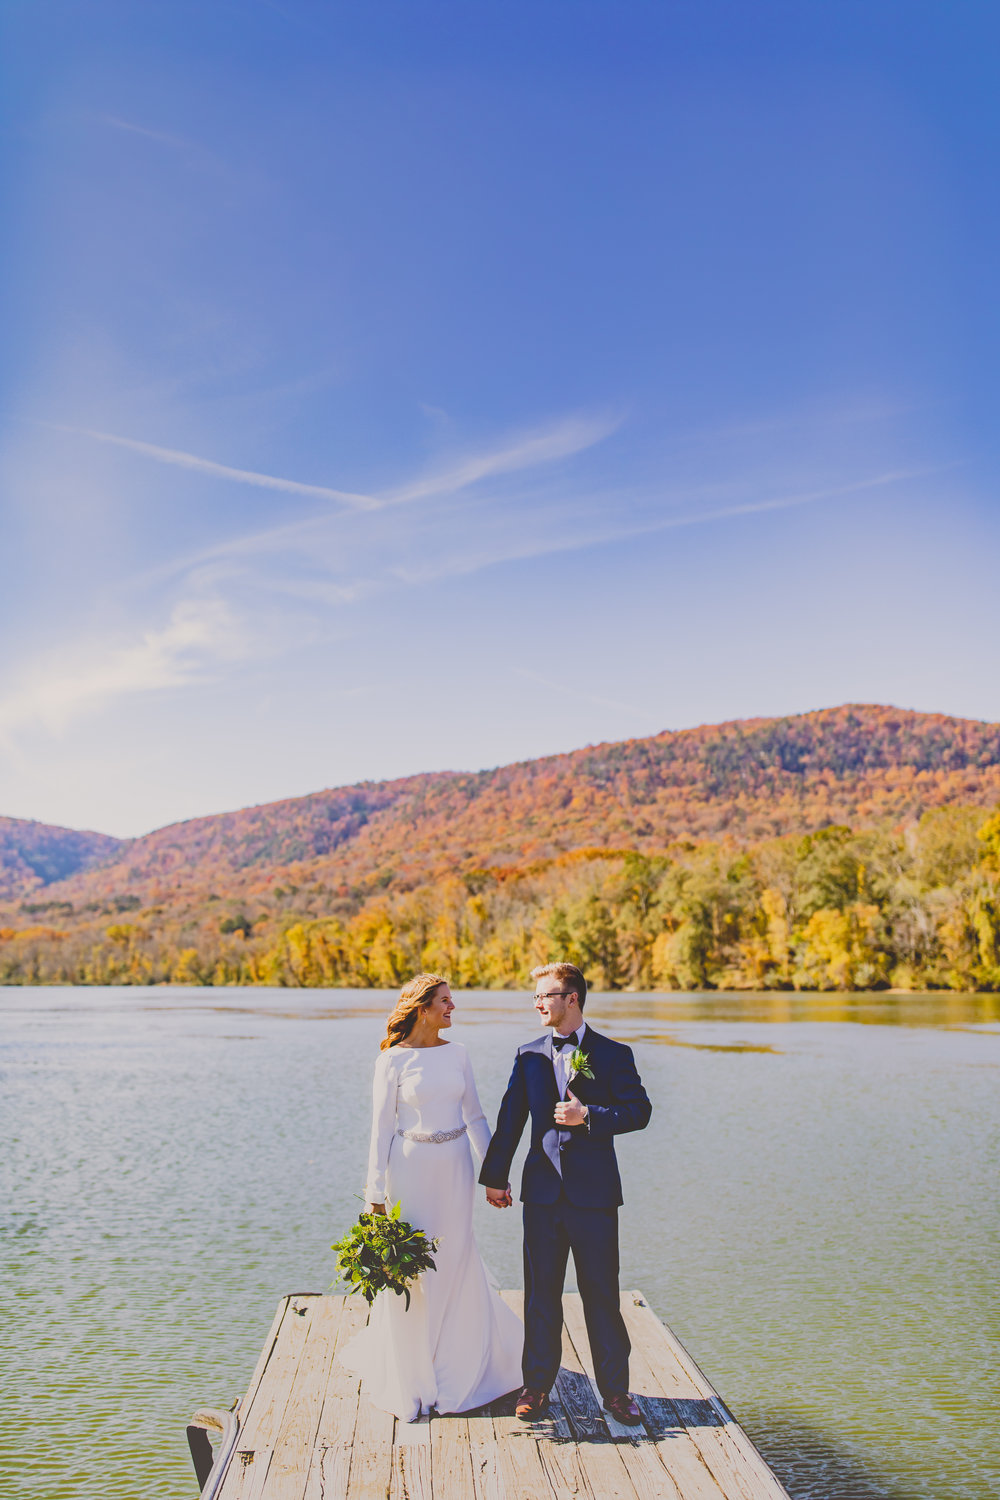 Wedding_Chattanooga_Emily_Lester_Photography-259.jpg